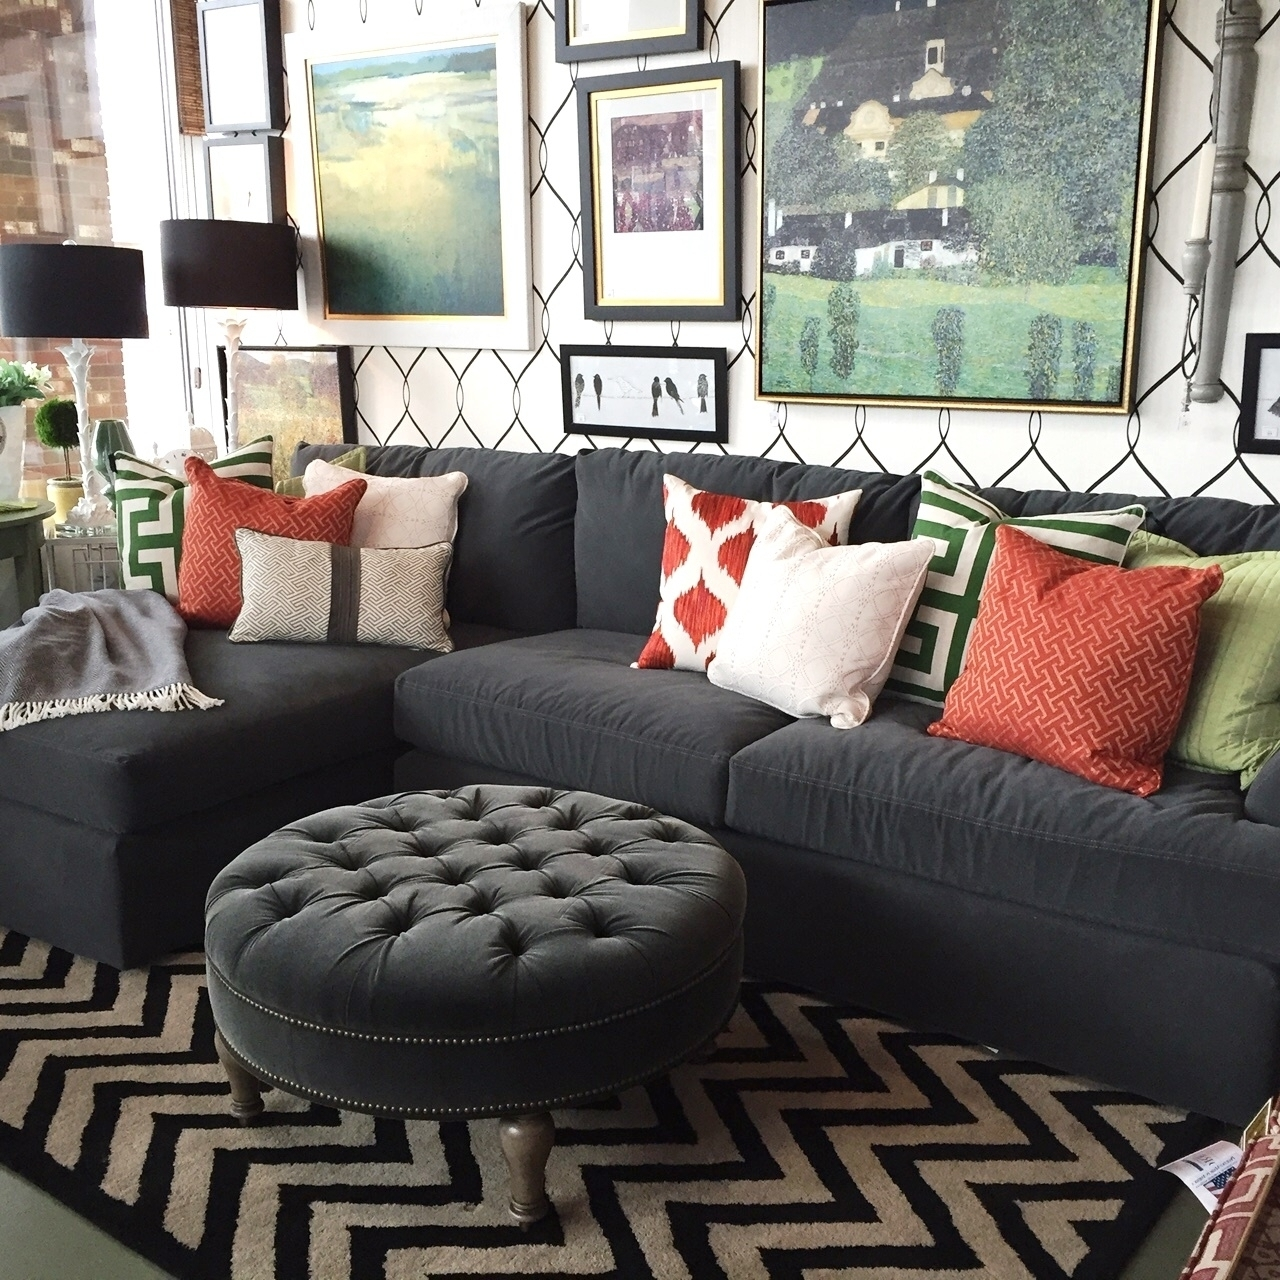 2018 Sectional Sofas In Small Spaces Trellis Of Erie Regarding Small Inside Sectional Sofas For Small Areas (View 2 of 15)